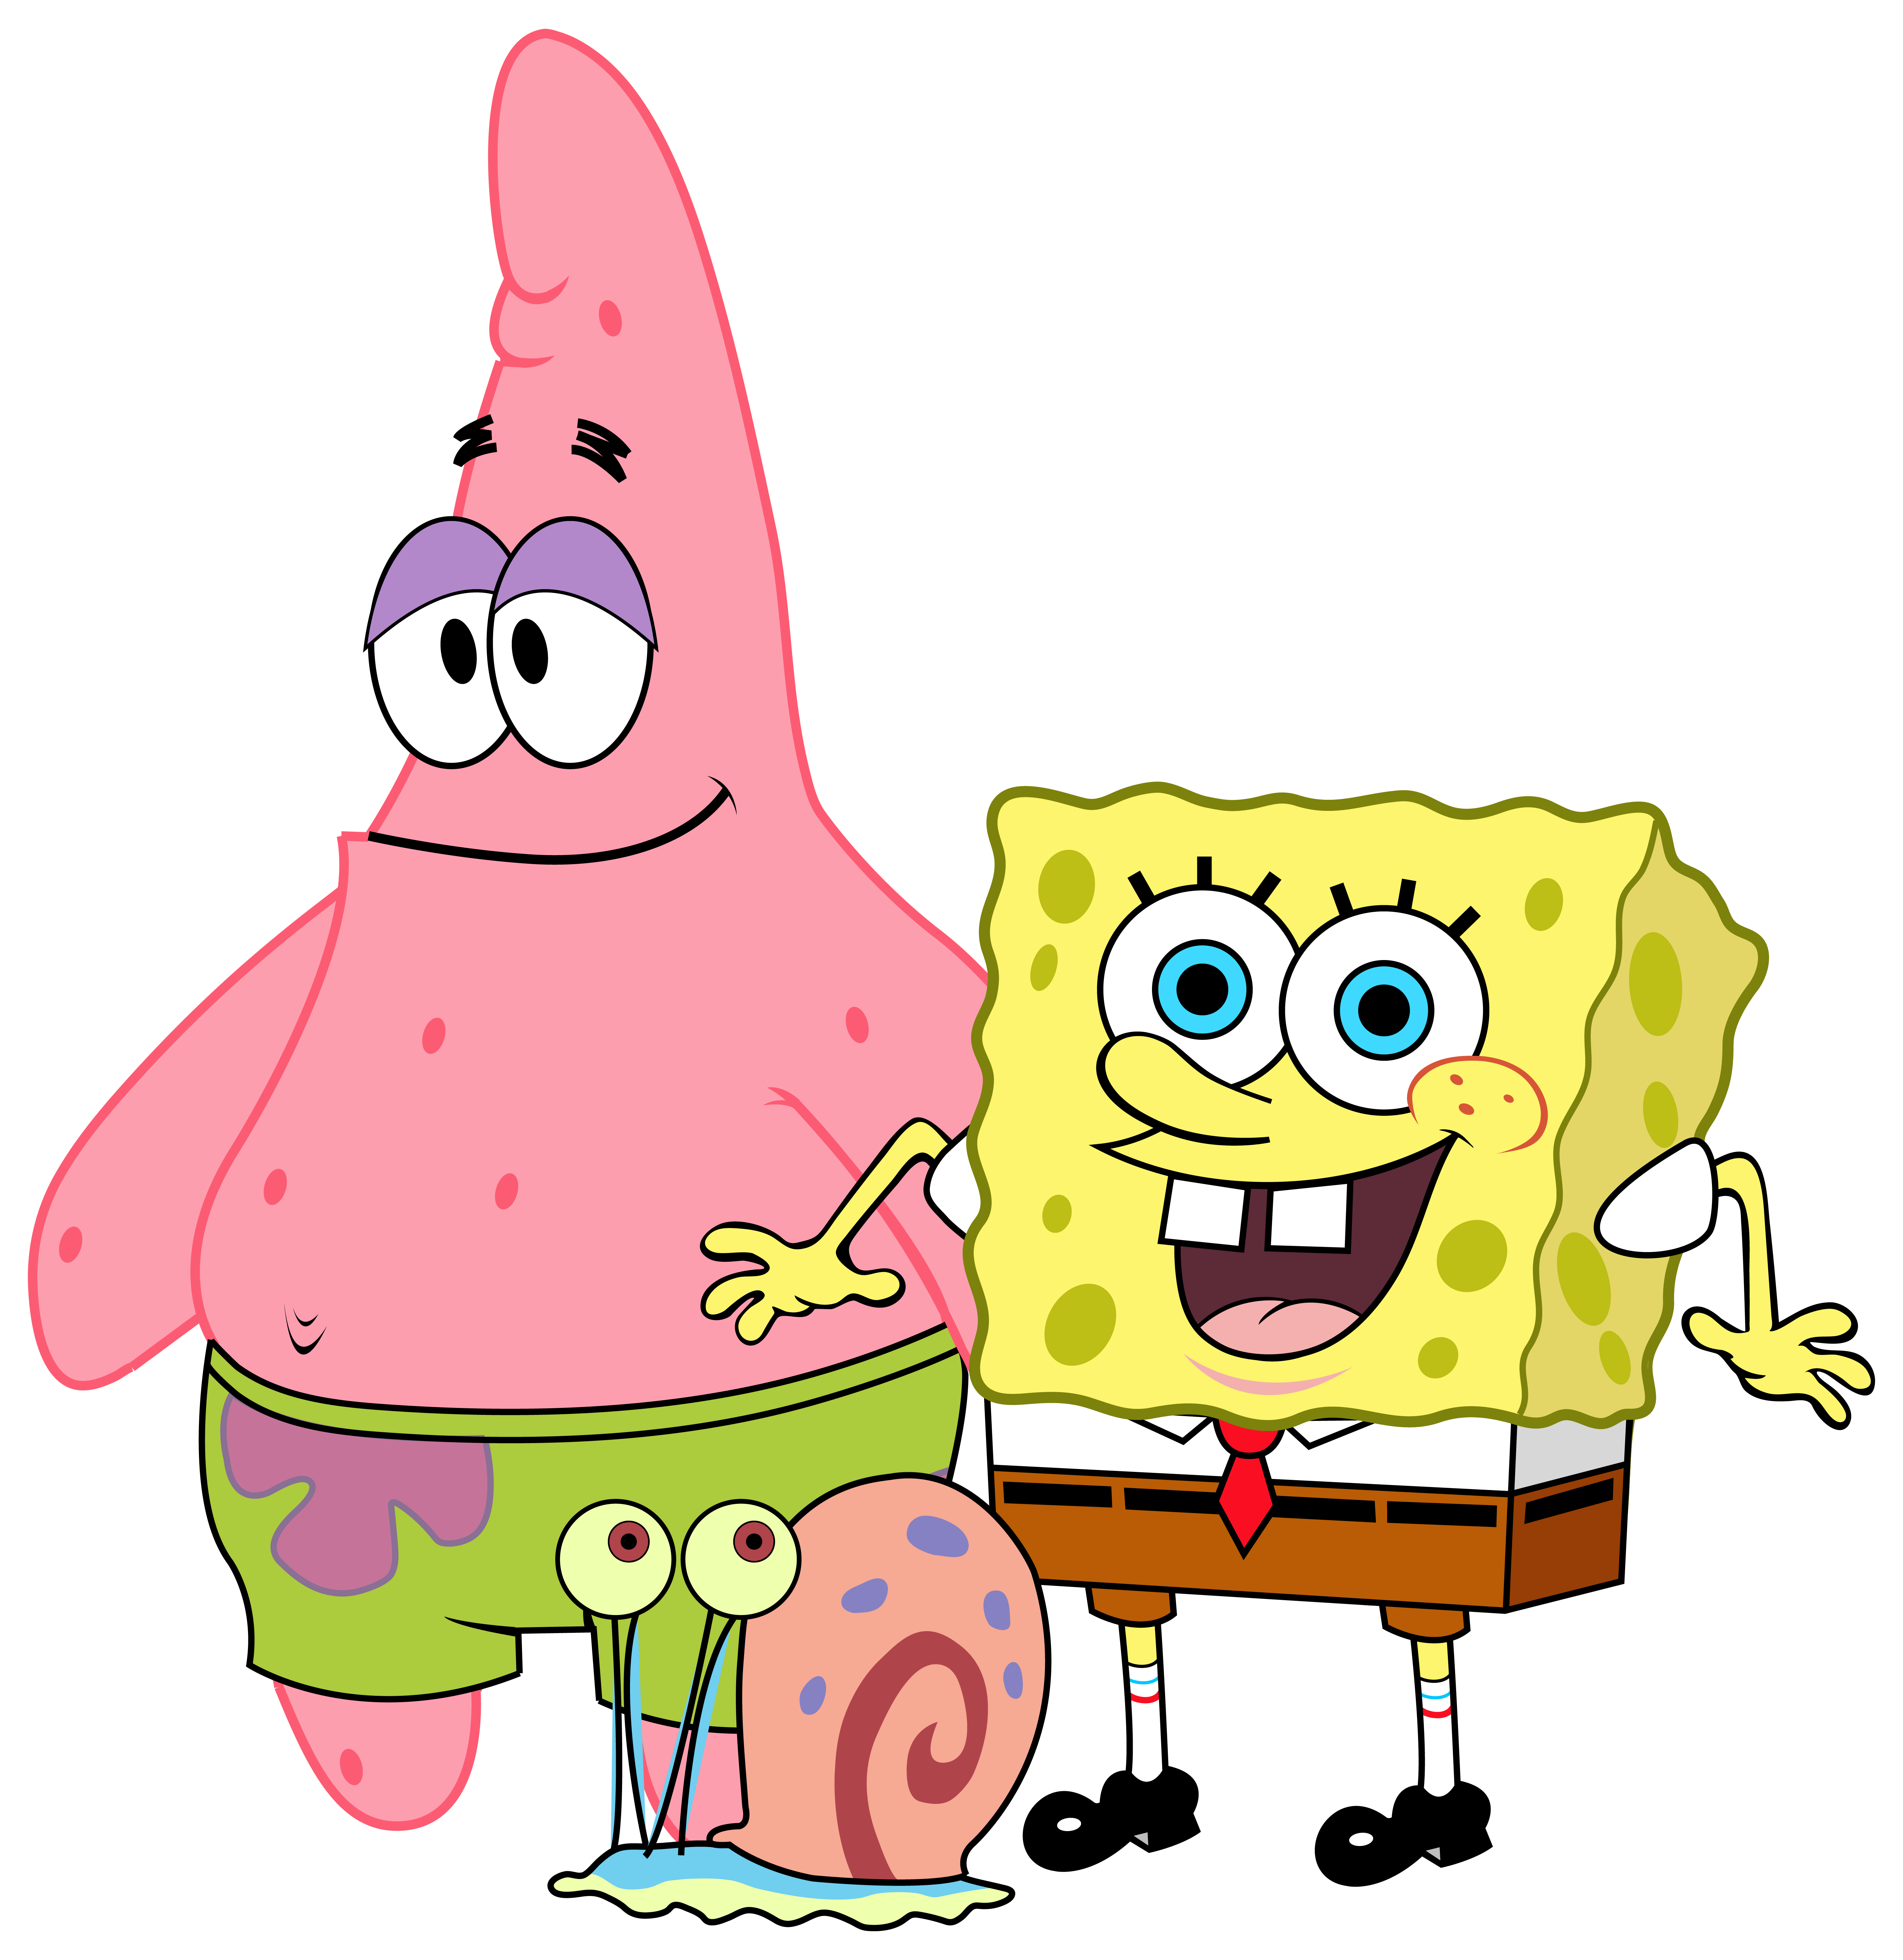 Phone clipart friend. Spongebob and friends png